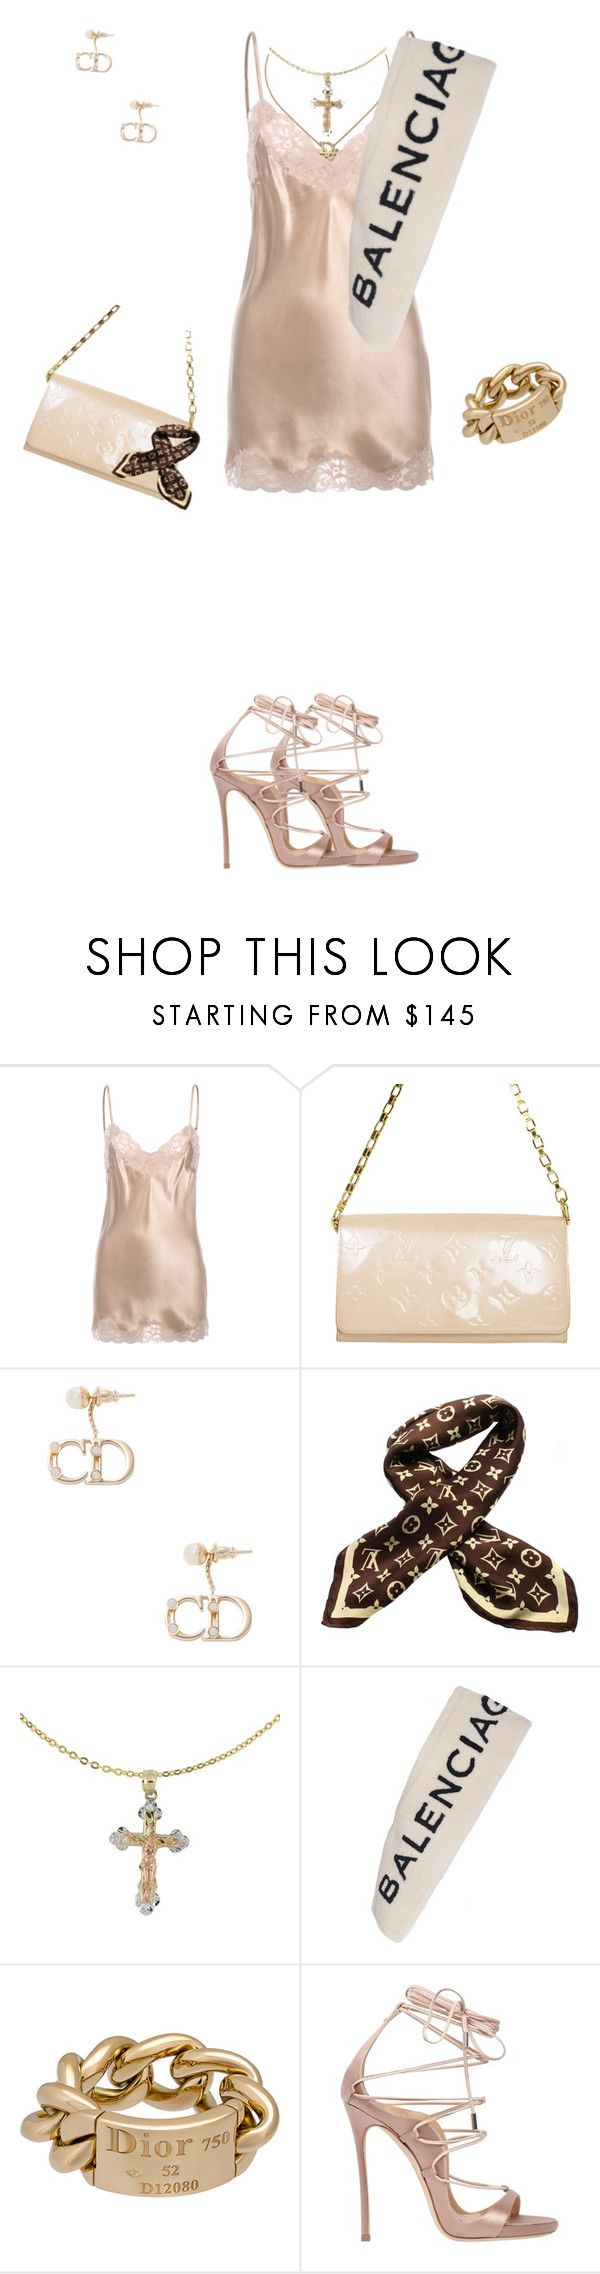 """Nicole the fox"" by looksbydes ❤ liked on Polyvore featuring Falcon & Bloom, Louis Vuitton, Christian Dior, Cross, Balenciaga and Dsquared2"